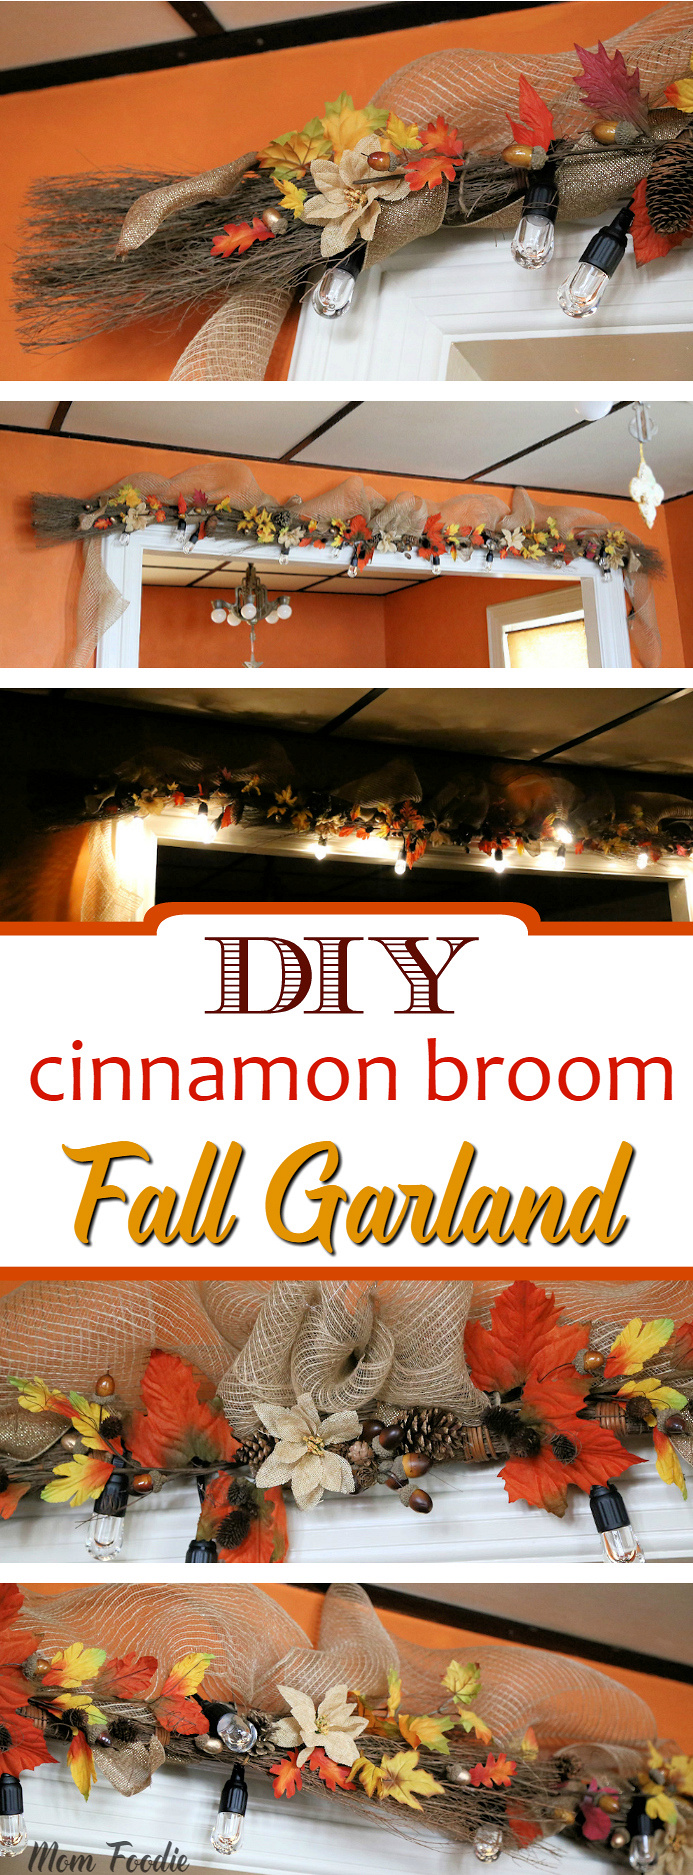 DIY Cinnamon Broom Fall Garland with Cafe Lights